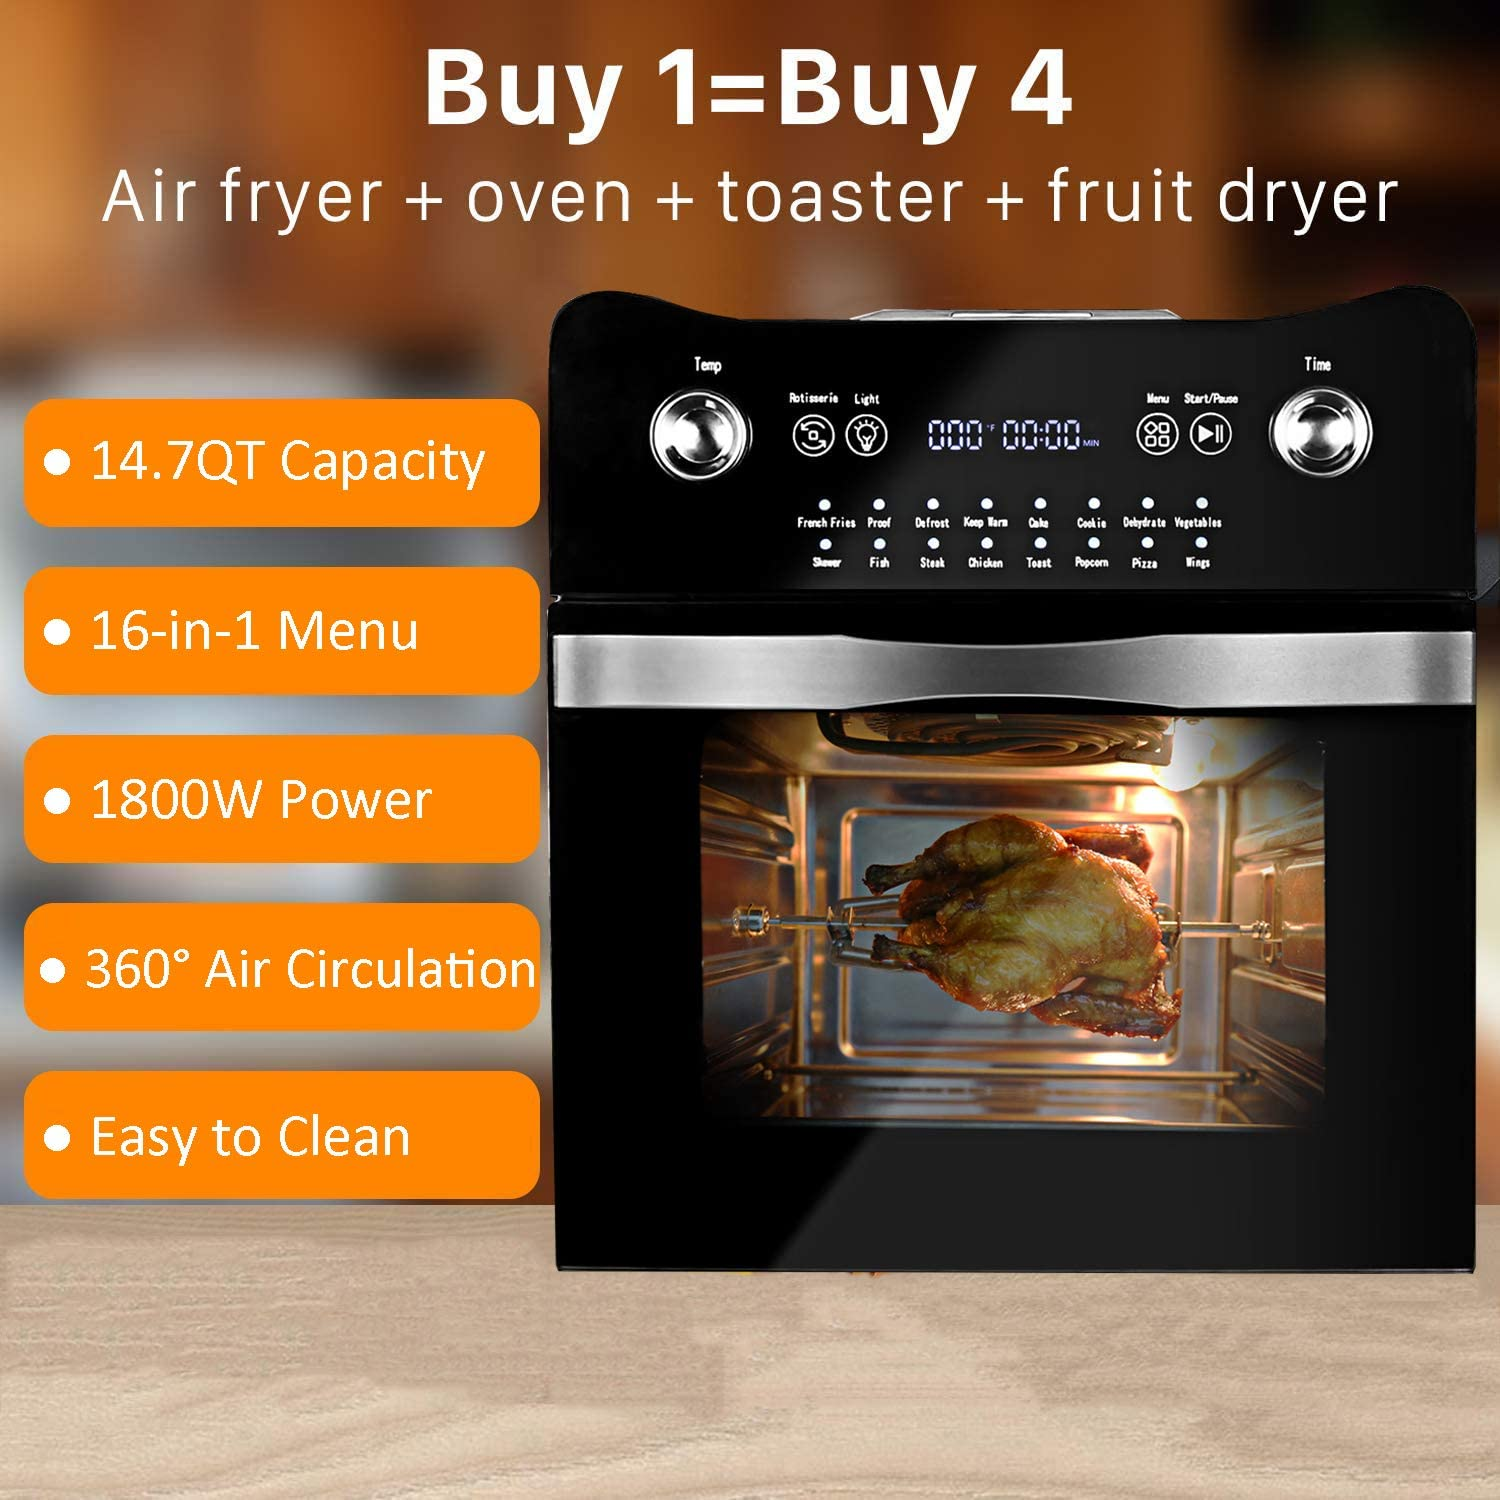 oven-used-to-dehydrate-food-fruits-herbs-etc